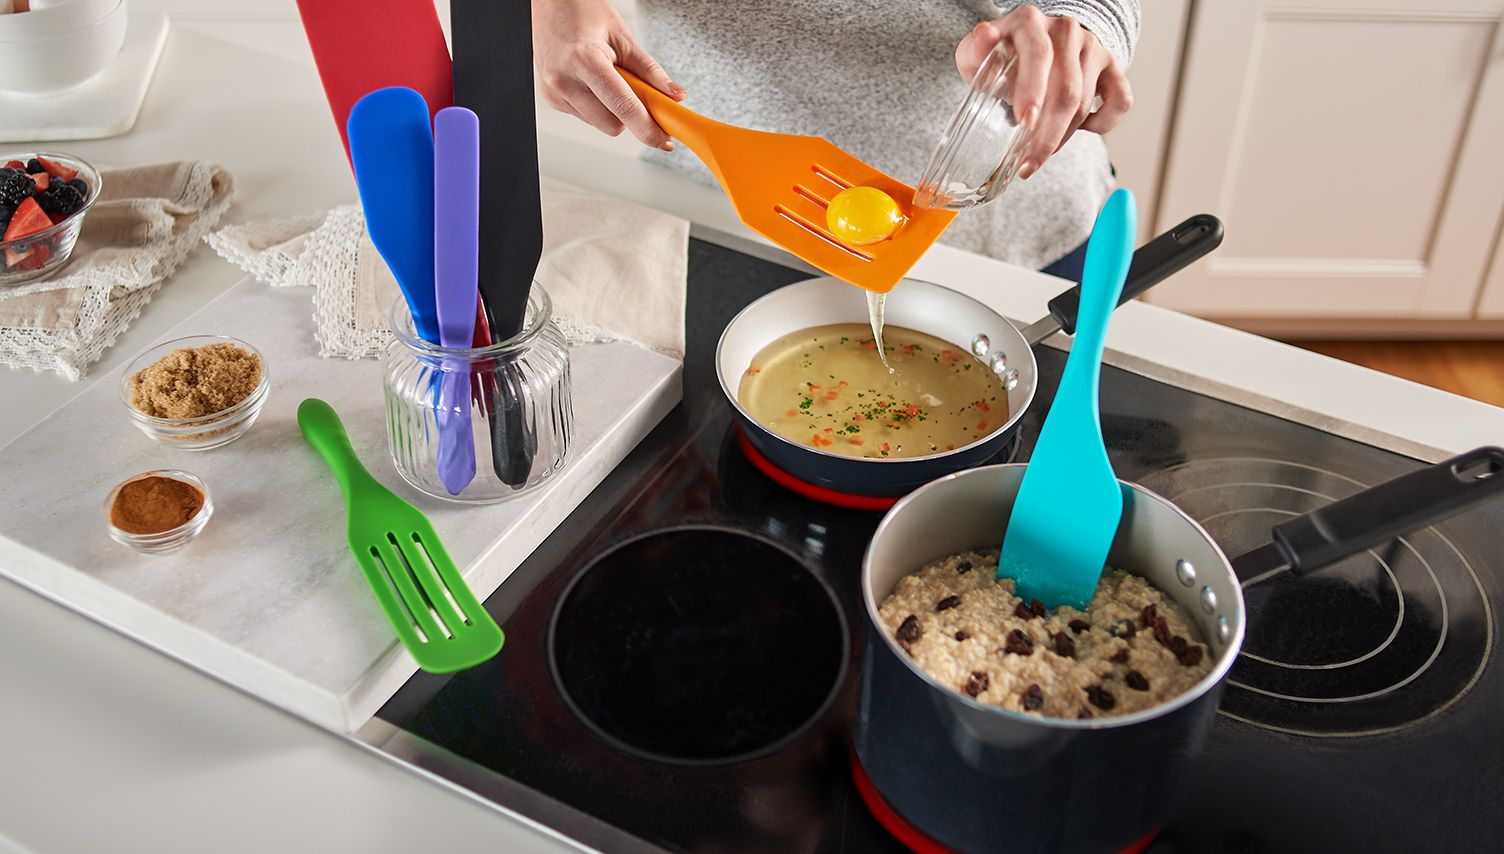 qvc.com shopping kitchen cabintes tools food qvc com stock the utensils